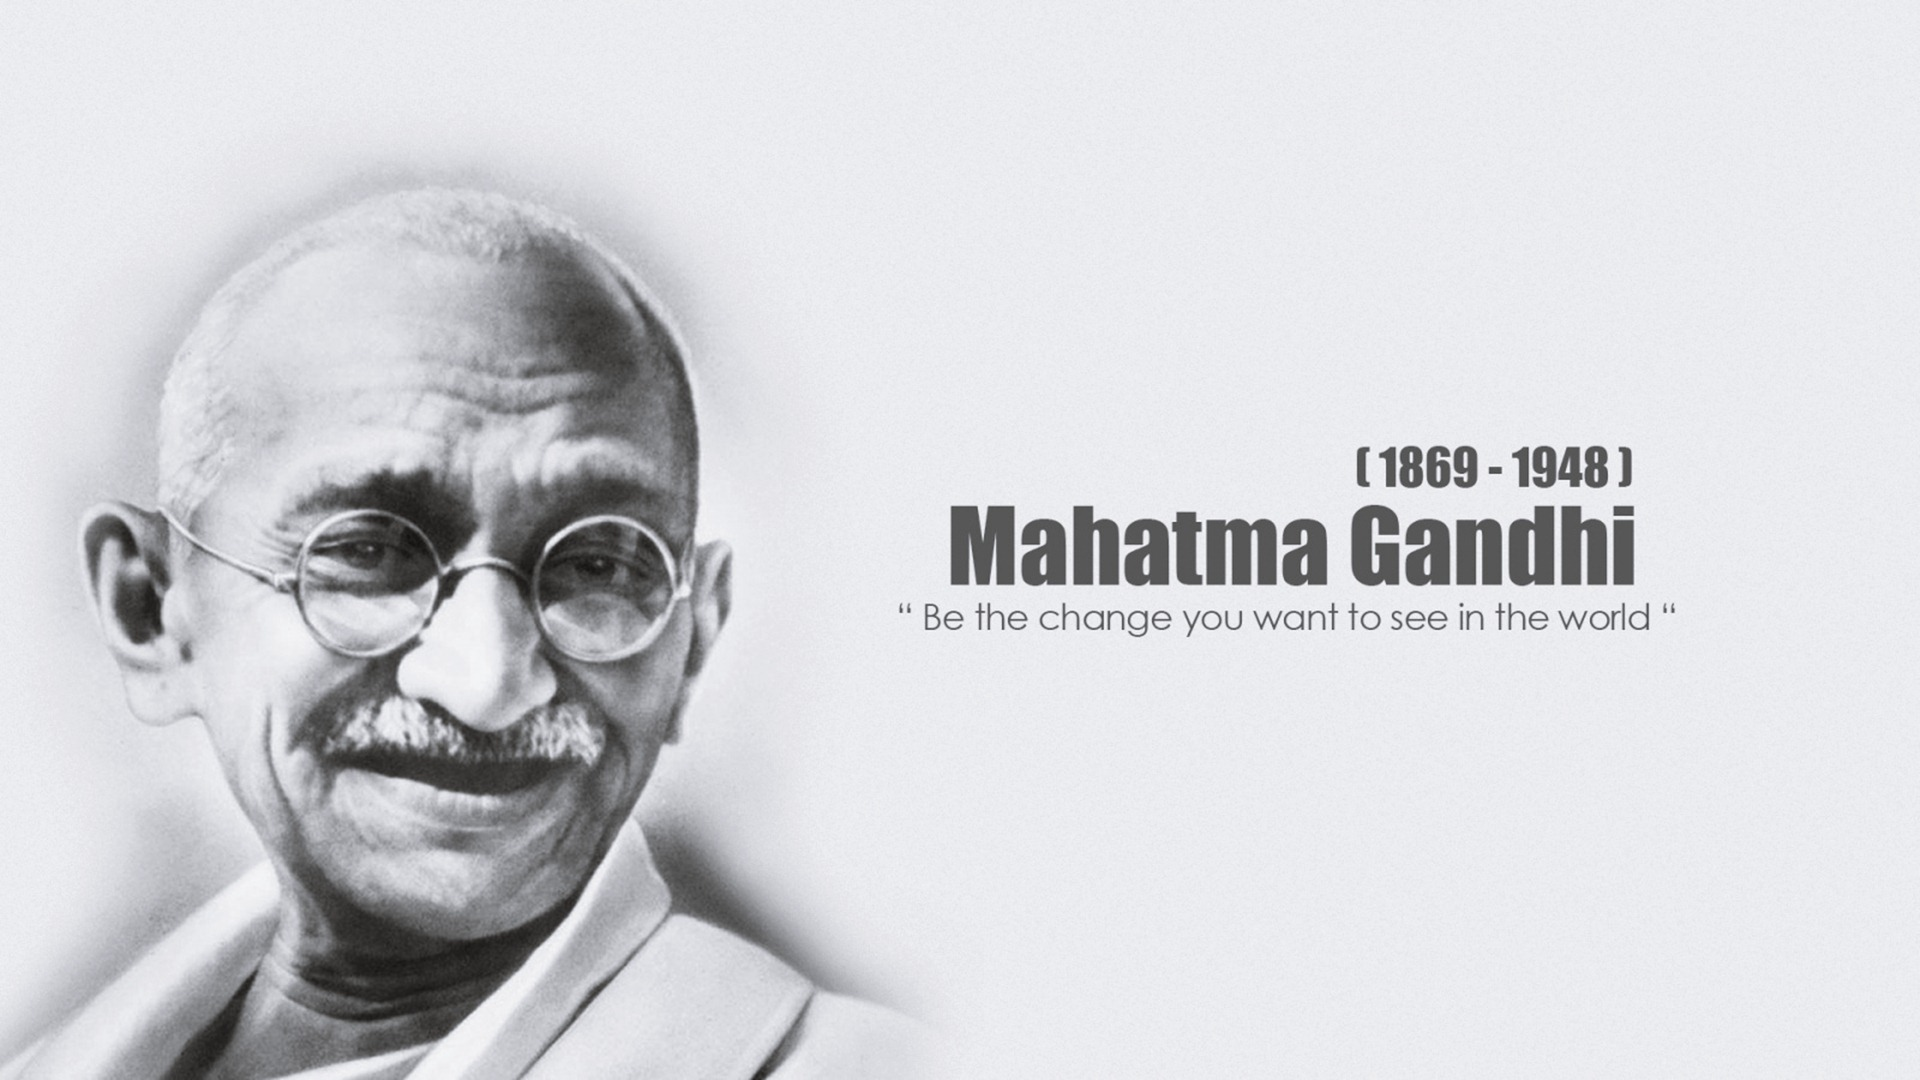 mahatma gandhi quotes hd wallpaper 05814 - baltana